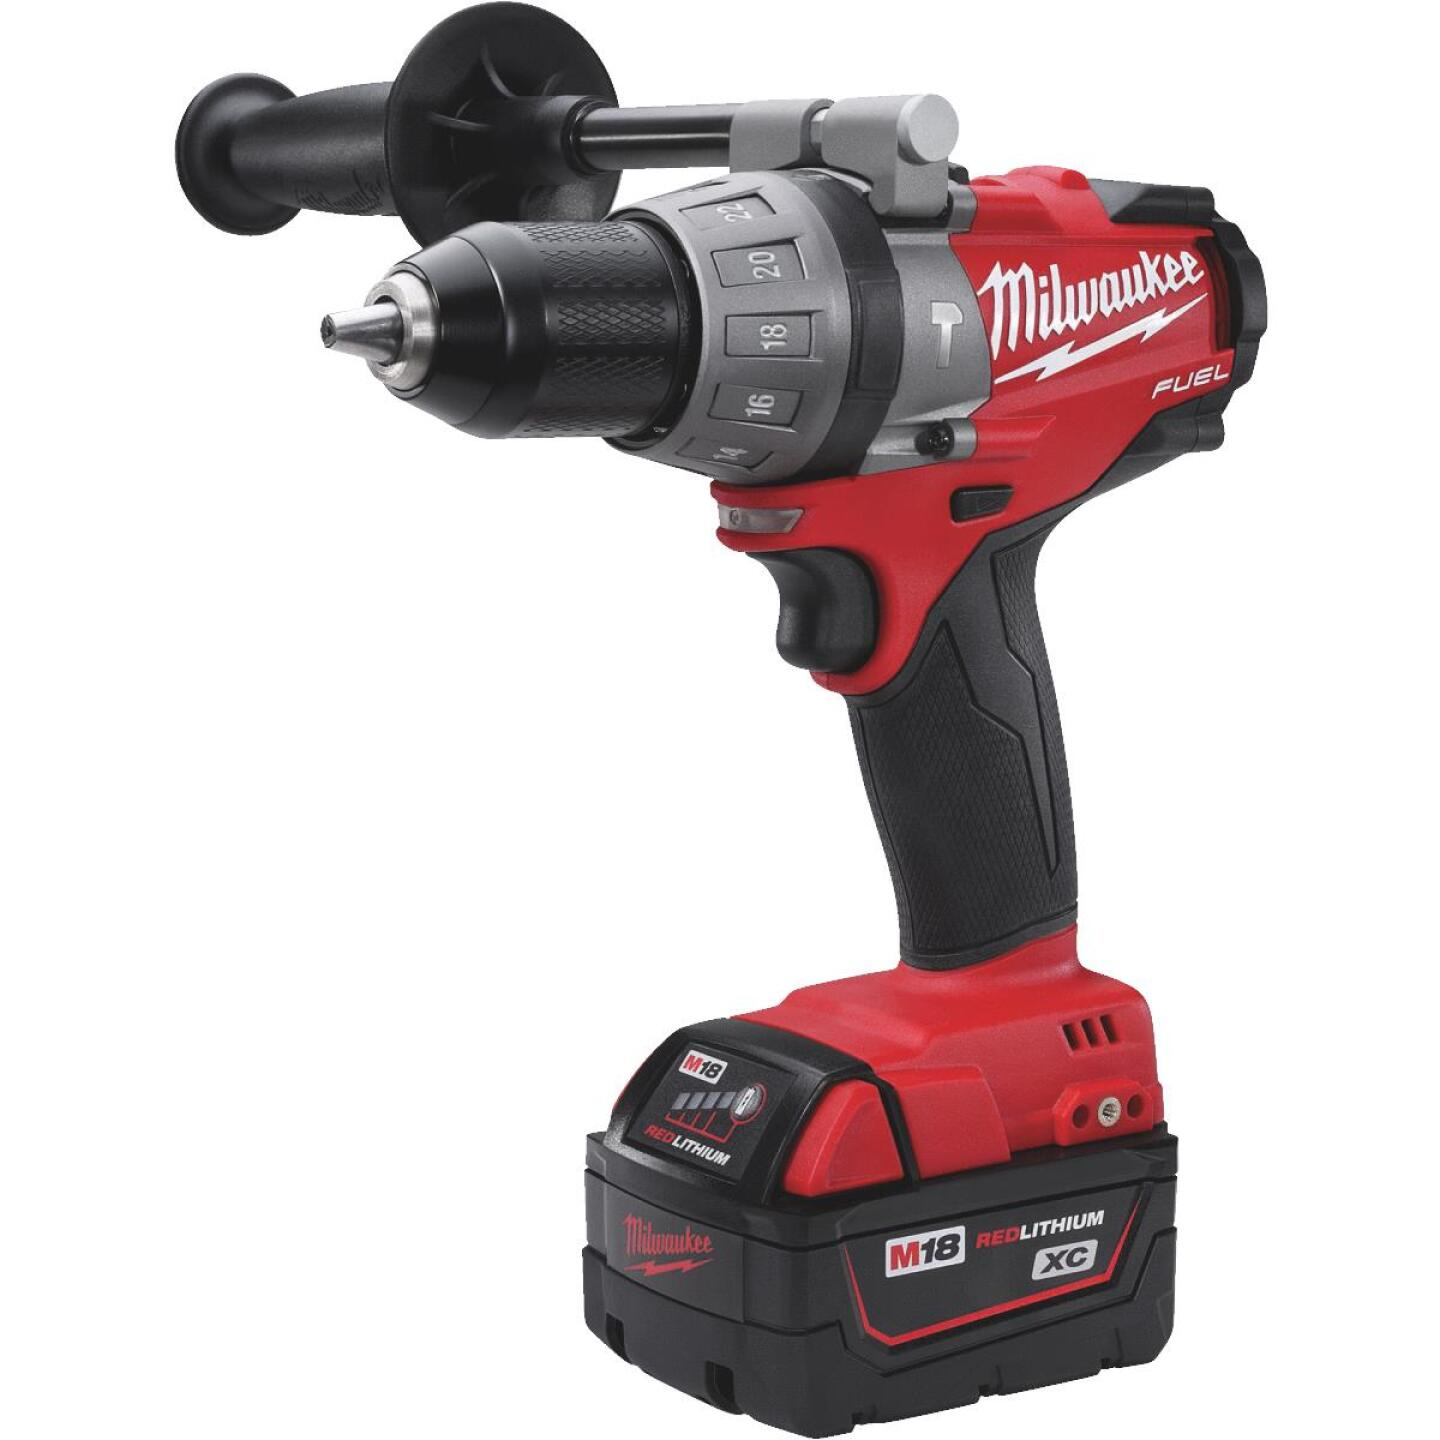 Milwaukee M18 FUEL 18-Volt XC Lithium-Ion Brushless 1/2 In. Cordless Hammer Drill Kit Image 2